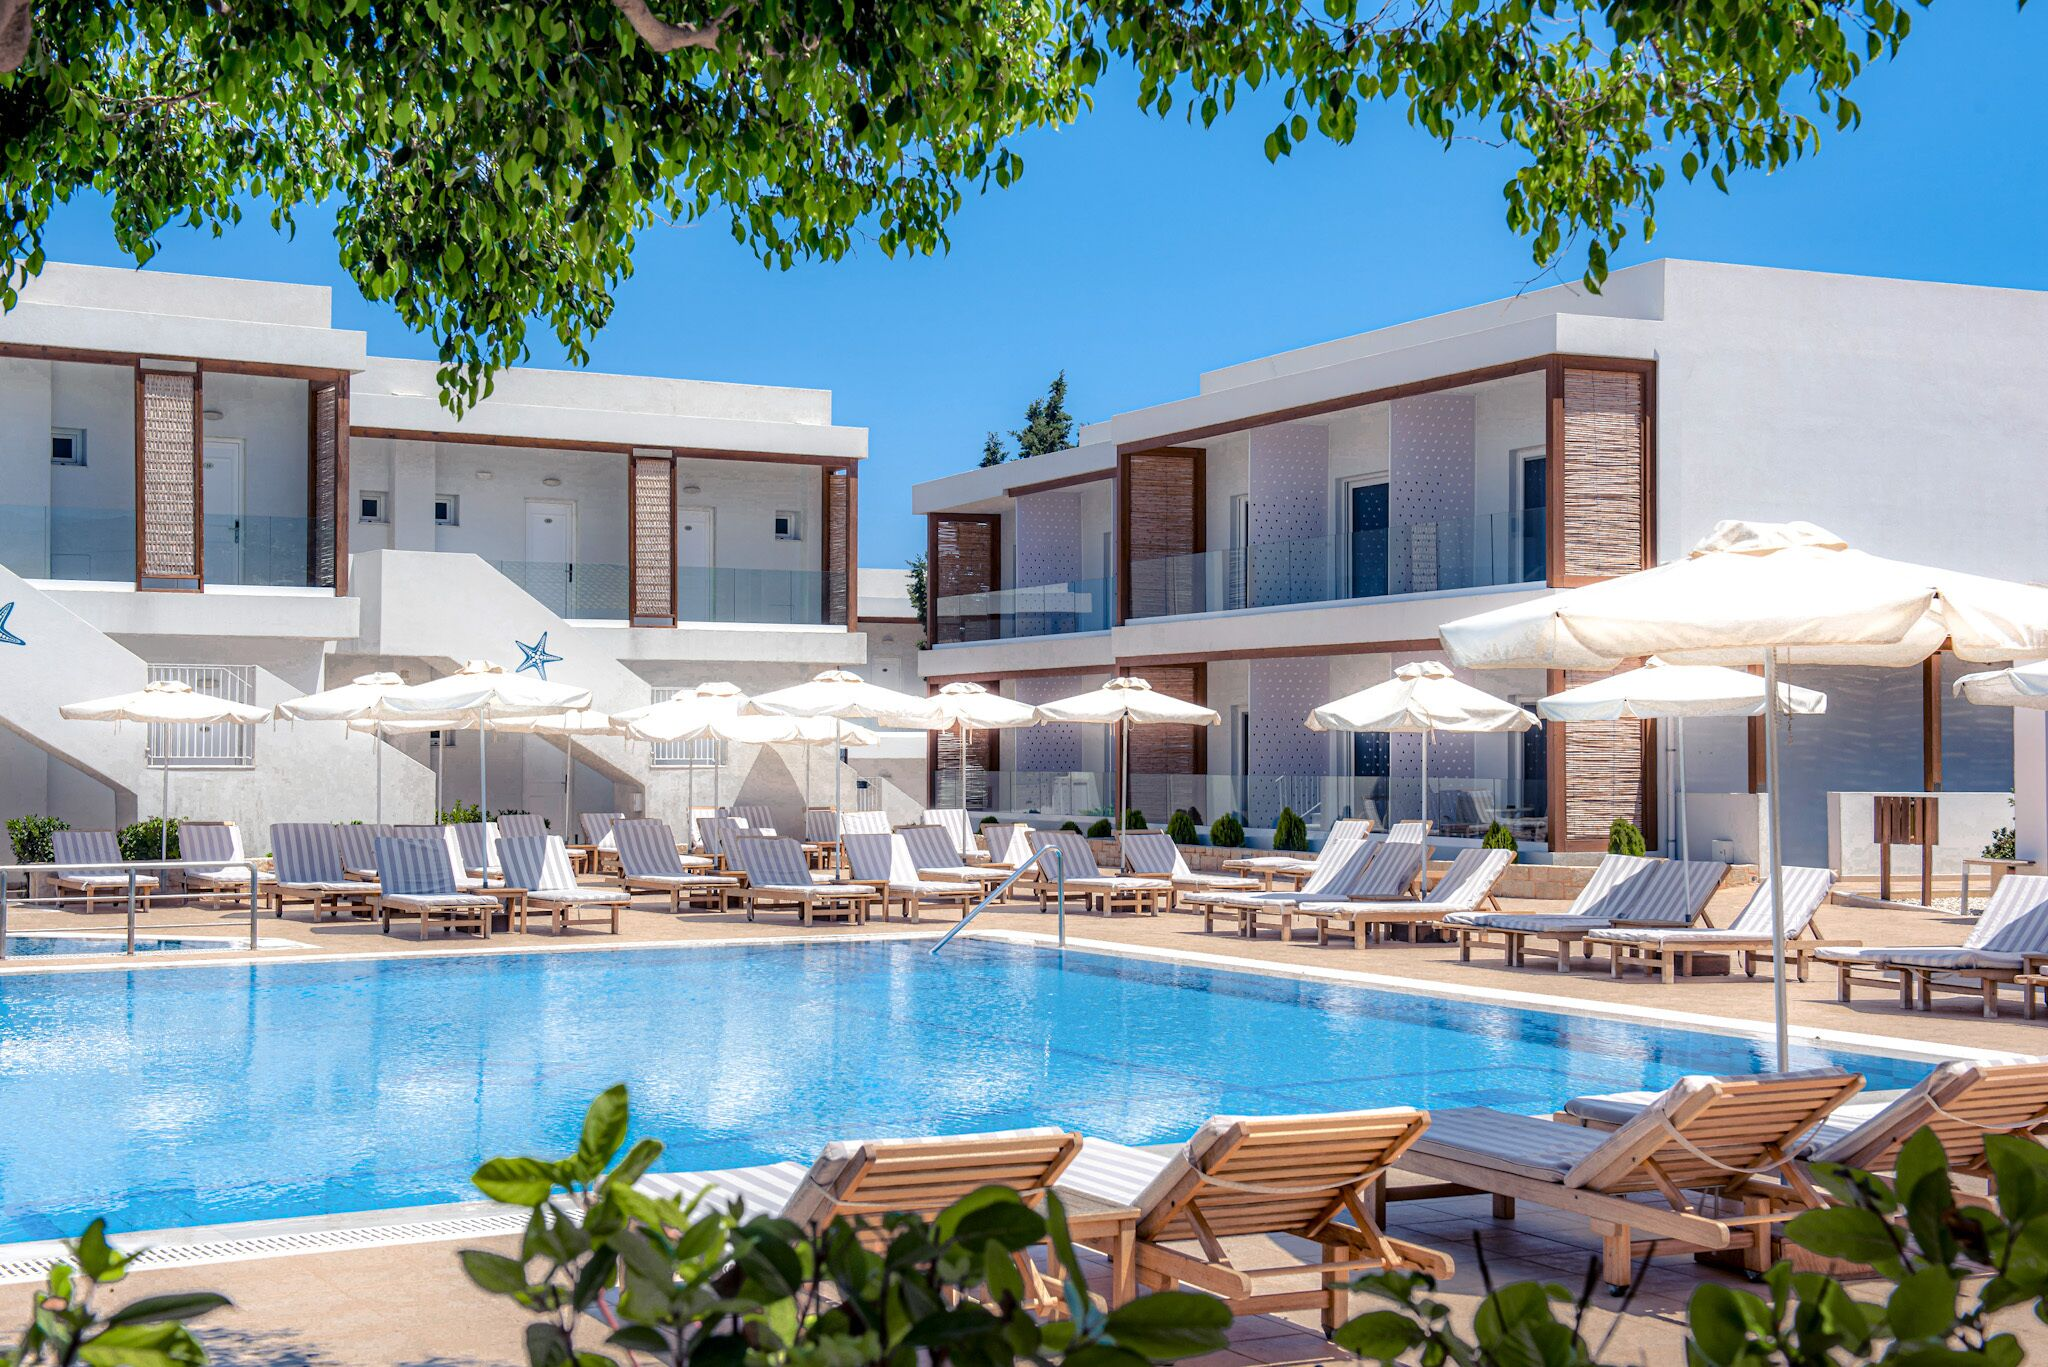 Cooee Lavris Hotels And Spa